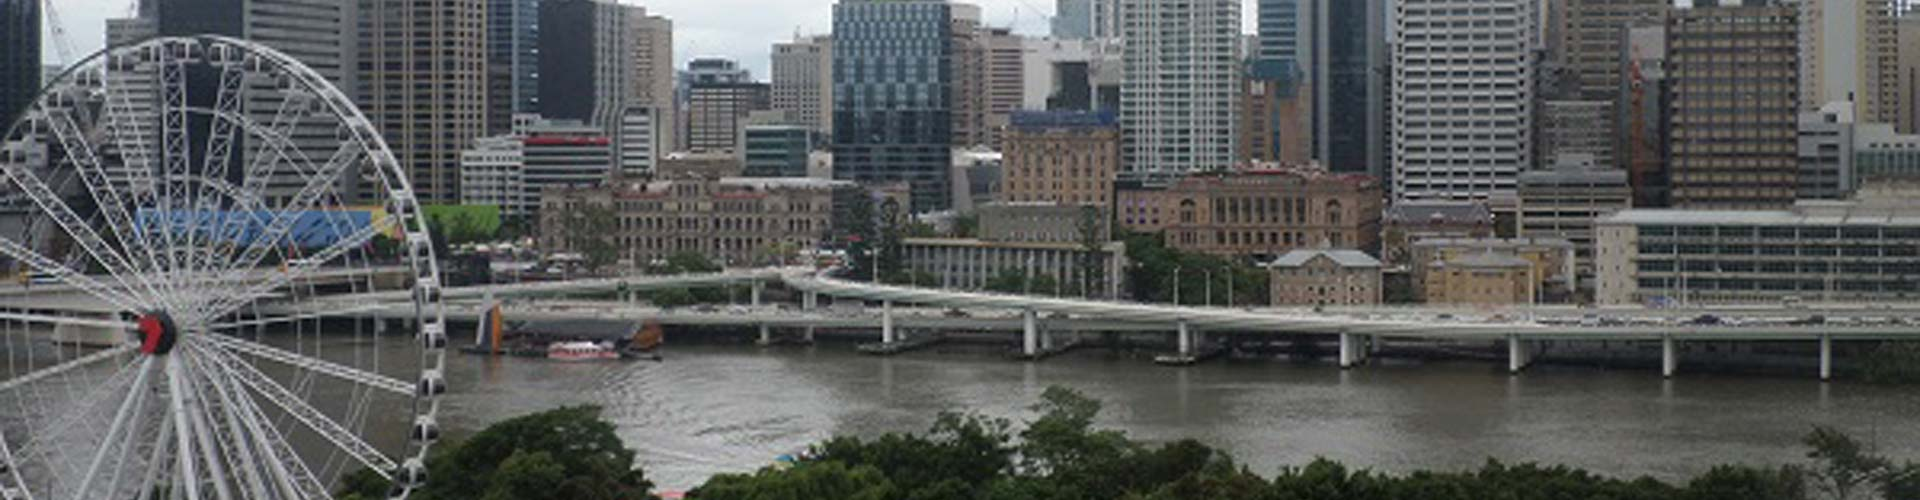 VENUE - BRISBANE CONVENTION AND EXHIBITION CENTRE